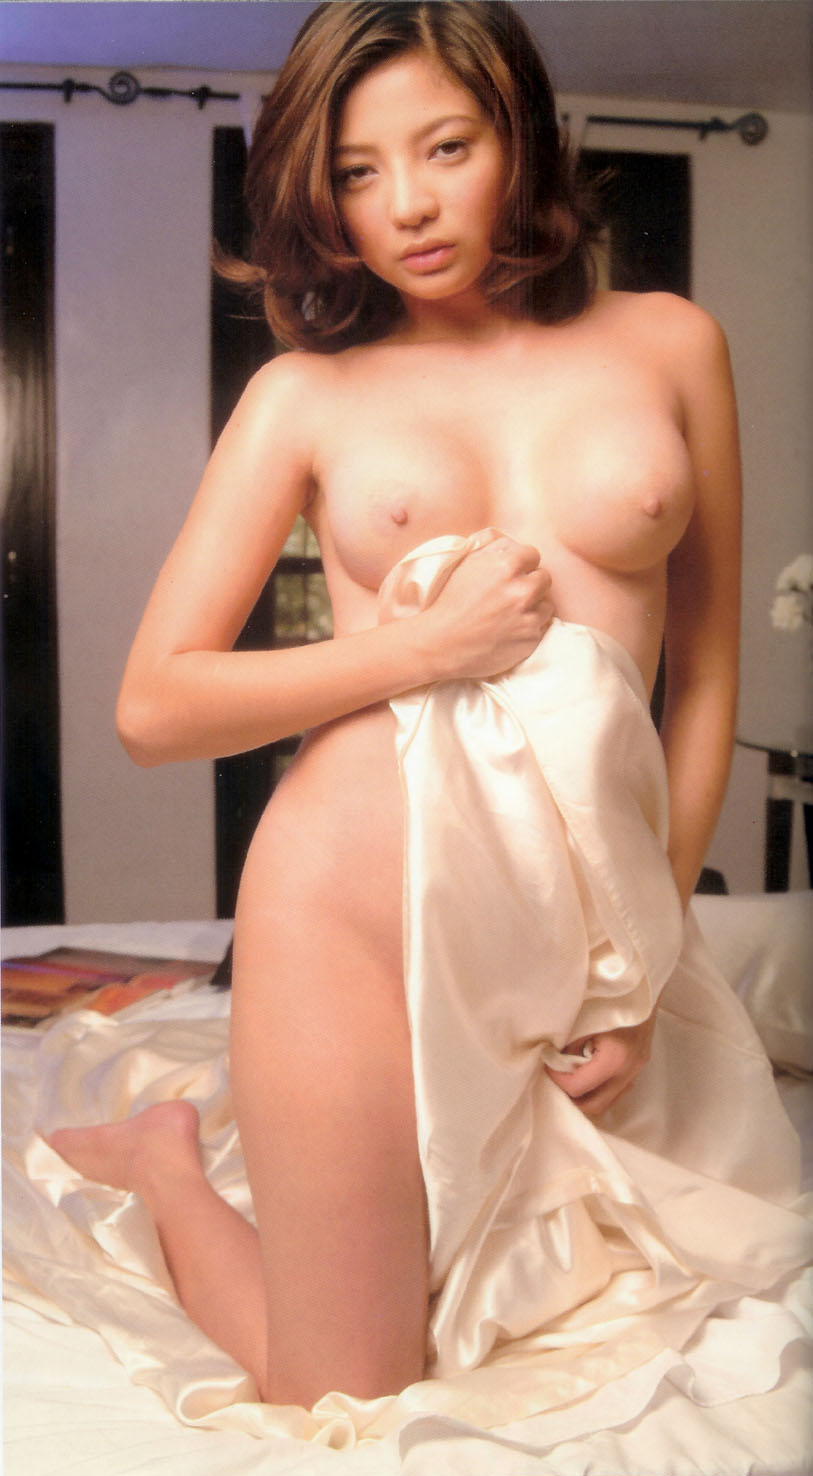 Think, Rica peralejo nude sexy hot